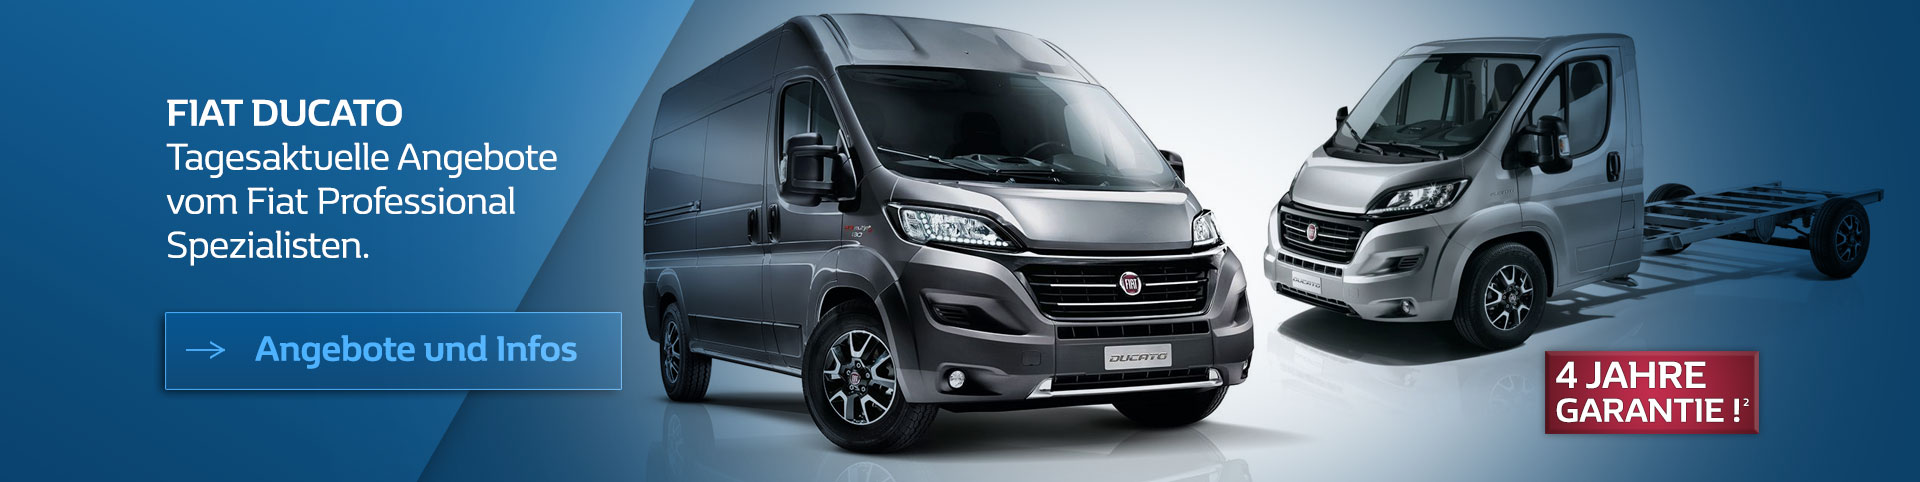 Fiat Ducato Transporter Angebote